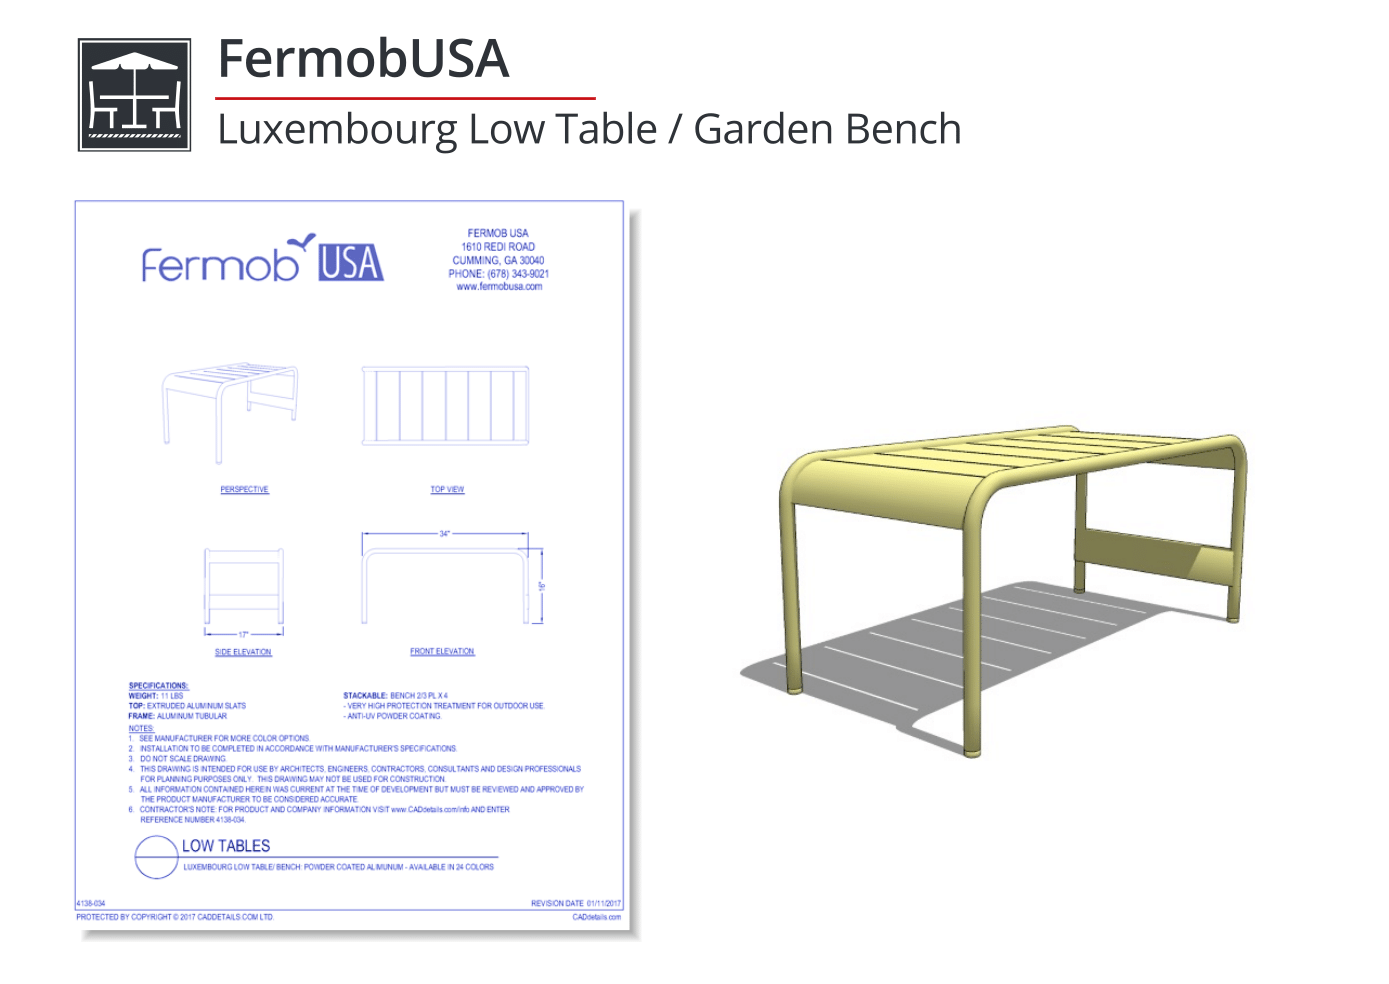 FermobUSA-Luxembourg-Low-Table-CAD-Drawing.png